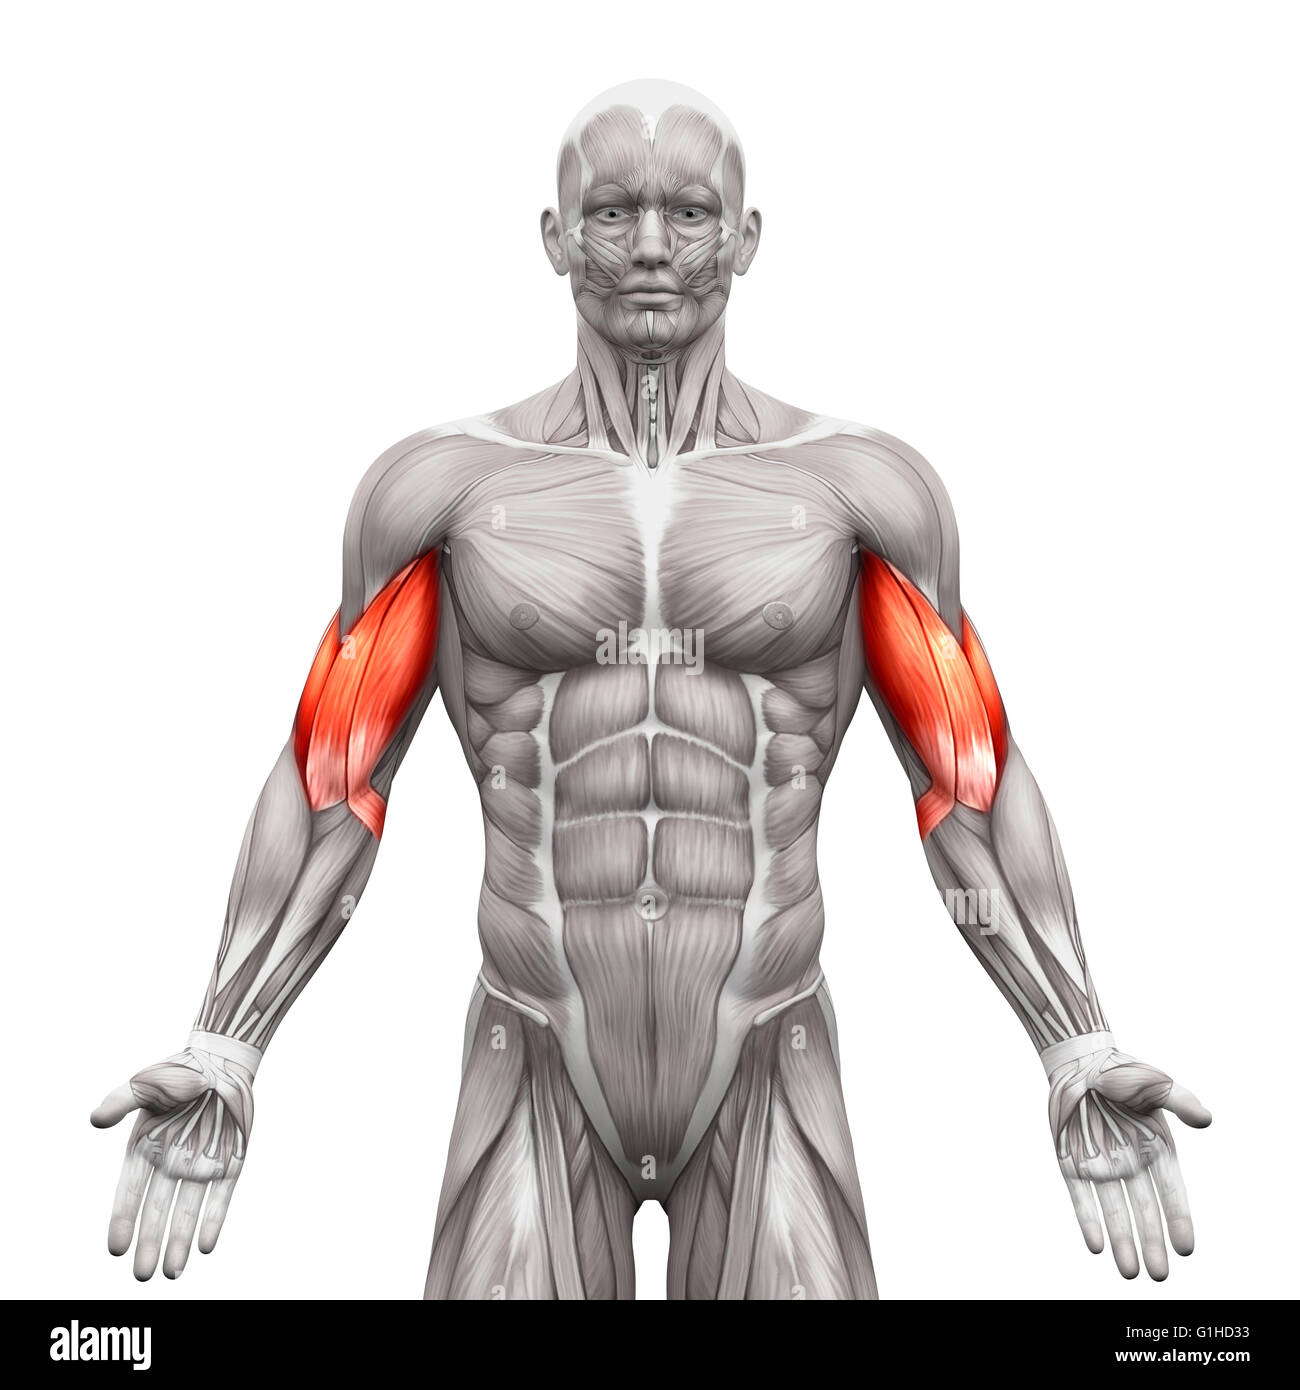 Brachialis Muscle Stock Photos & Brachialis Muscle Stock Images - Alamy